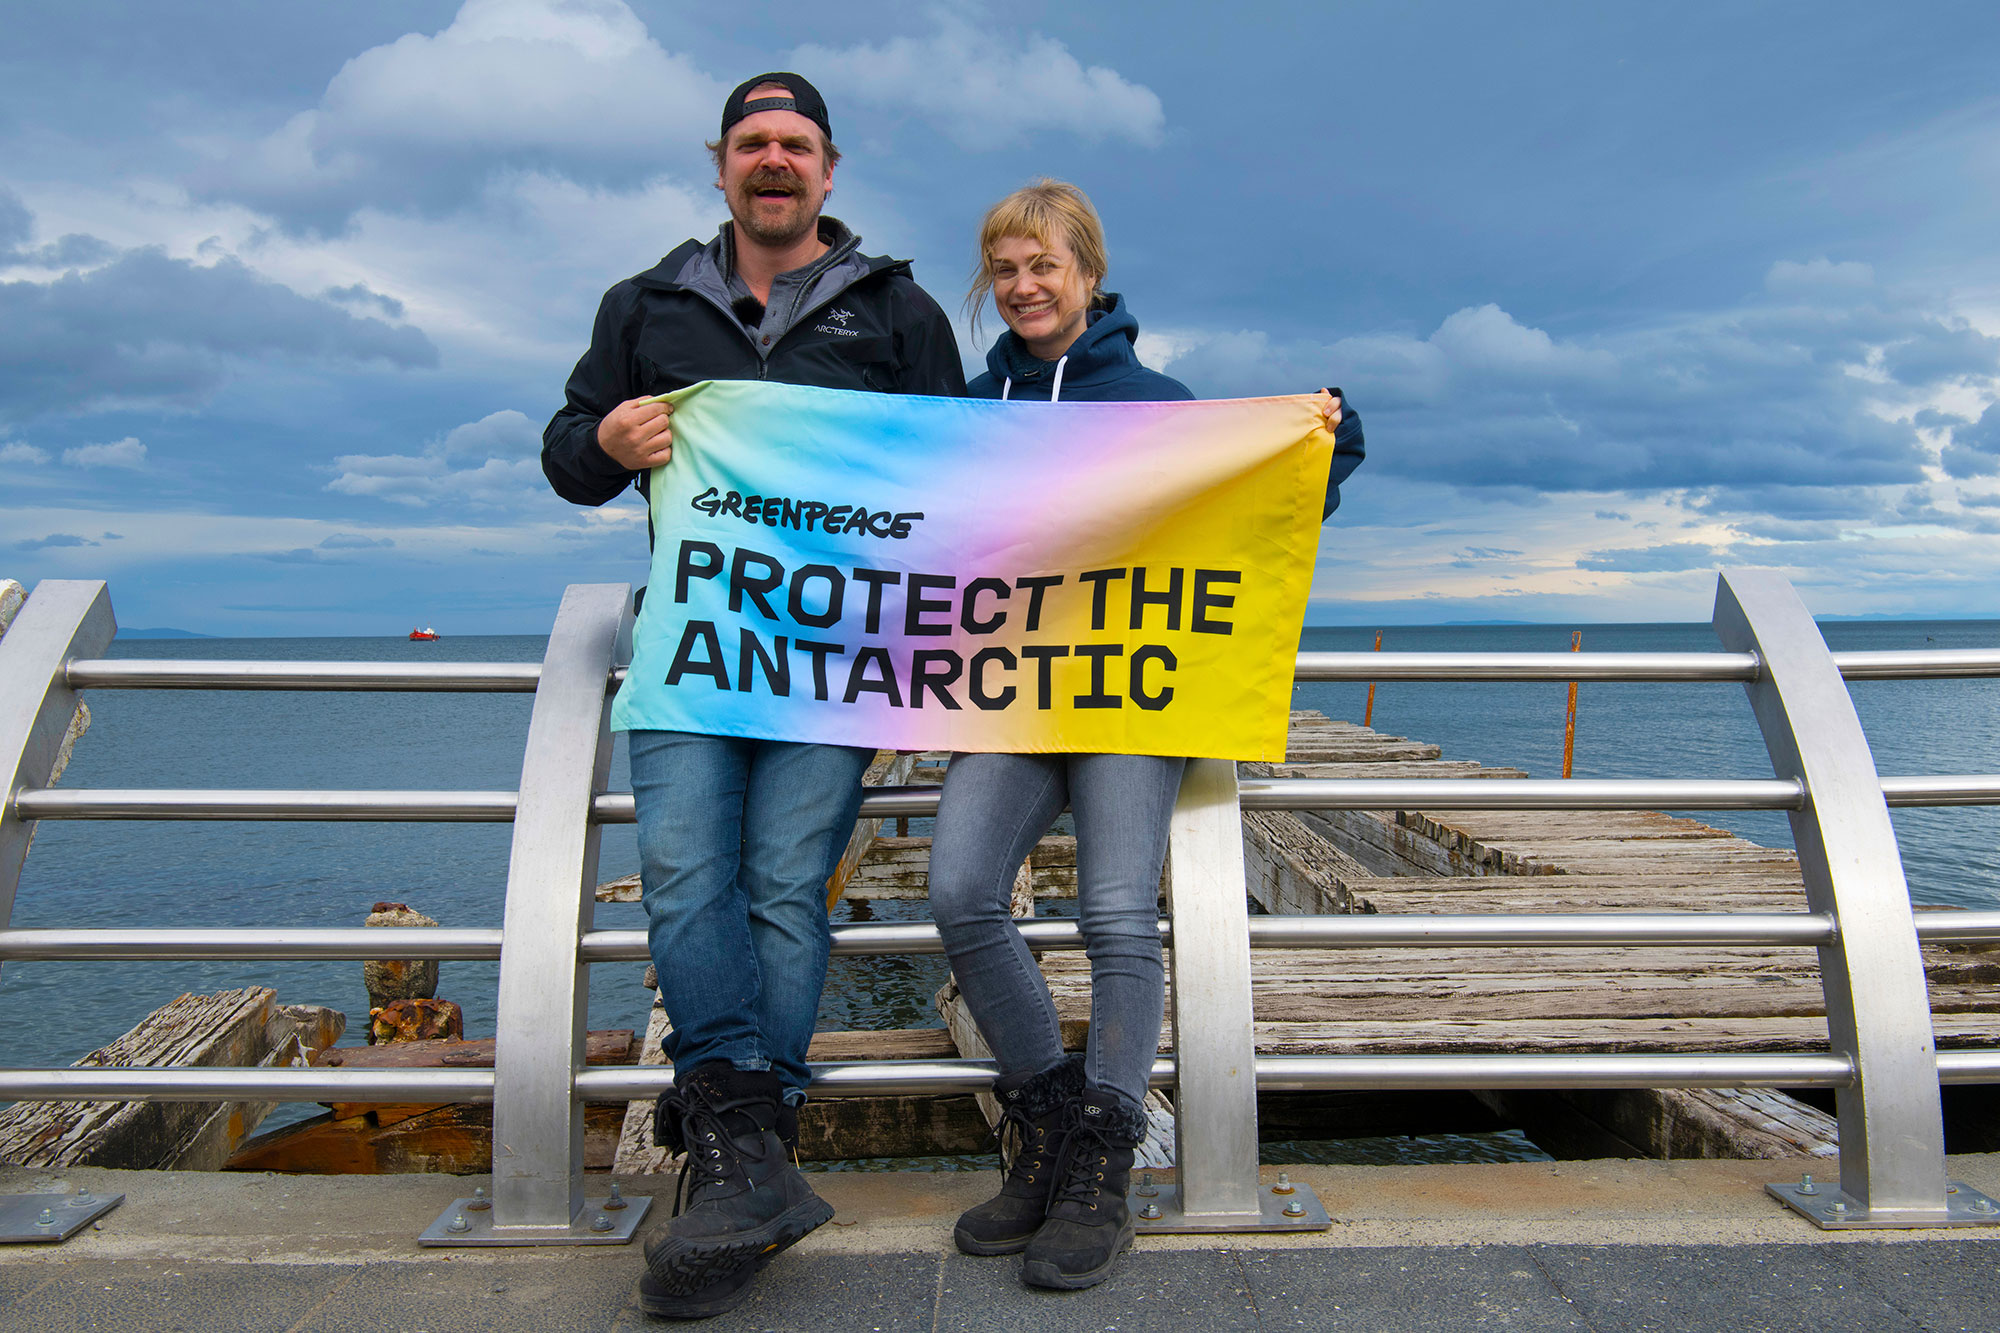 Lovers-Greenpeace-Antarctic-014